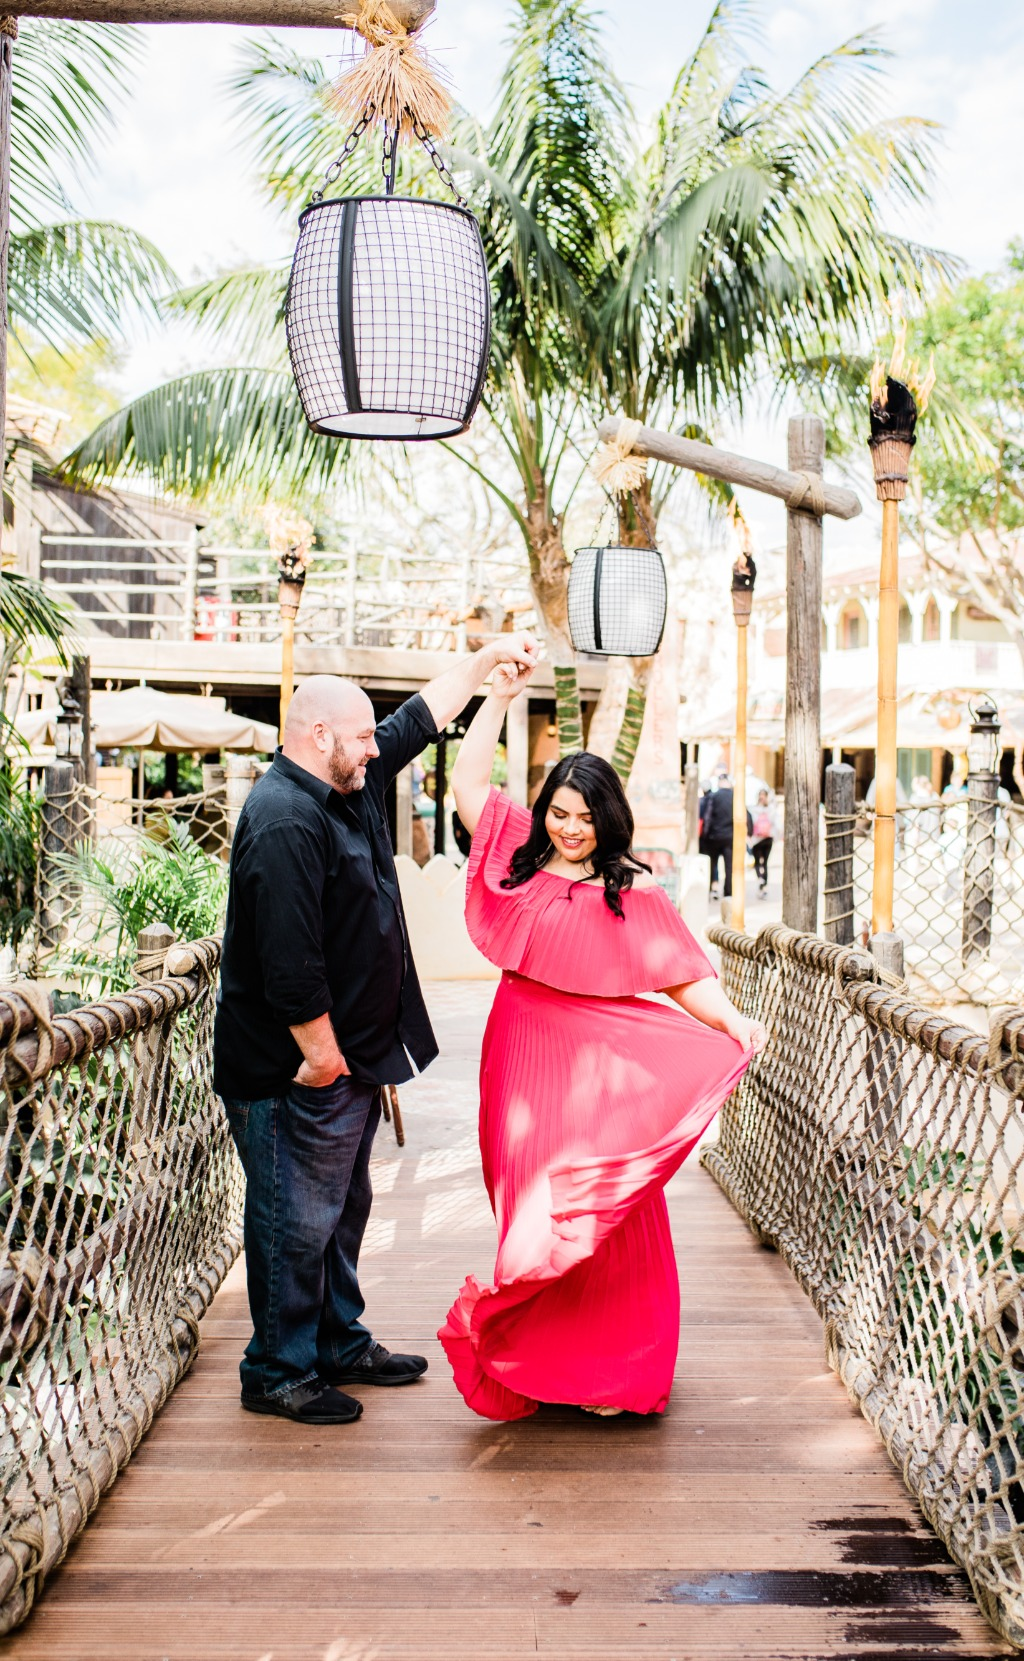 Disneyland is the best place for an engagement session!